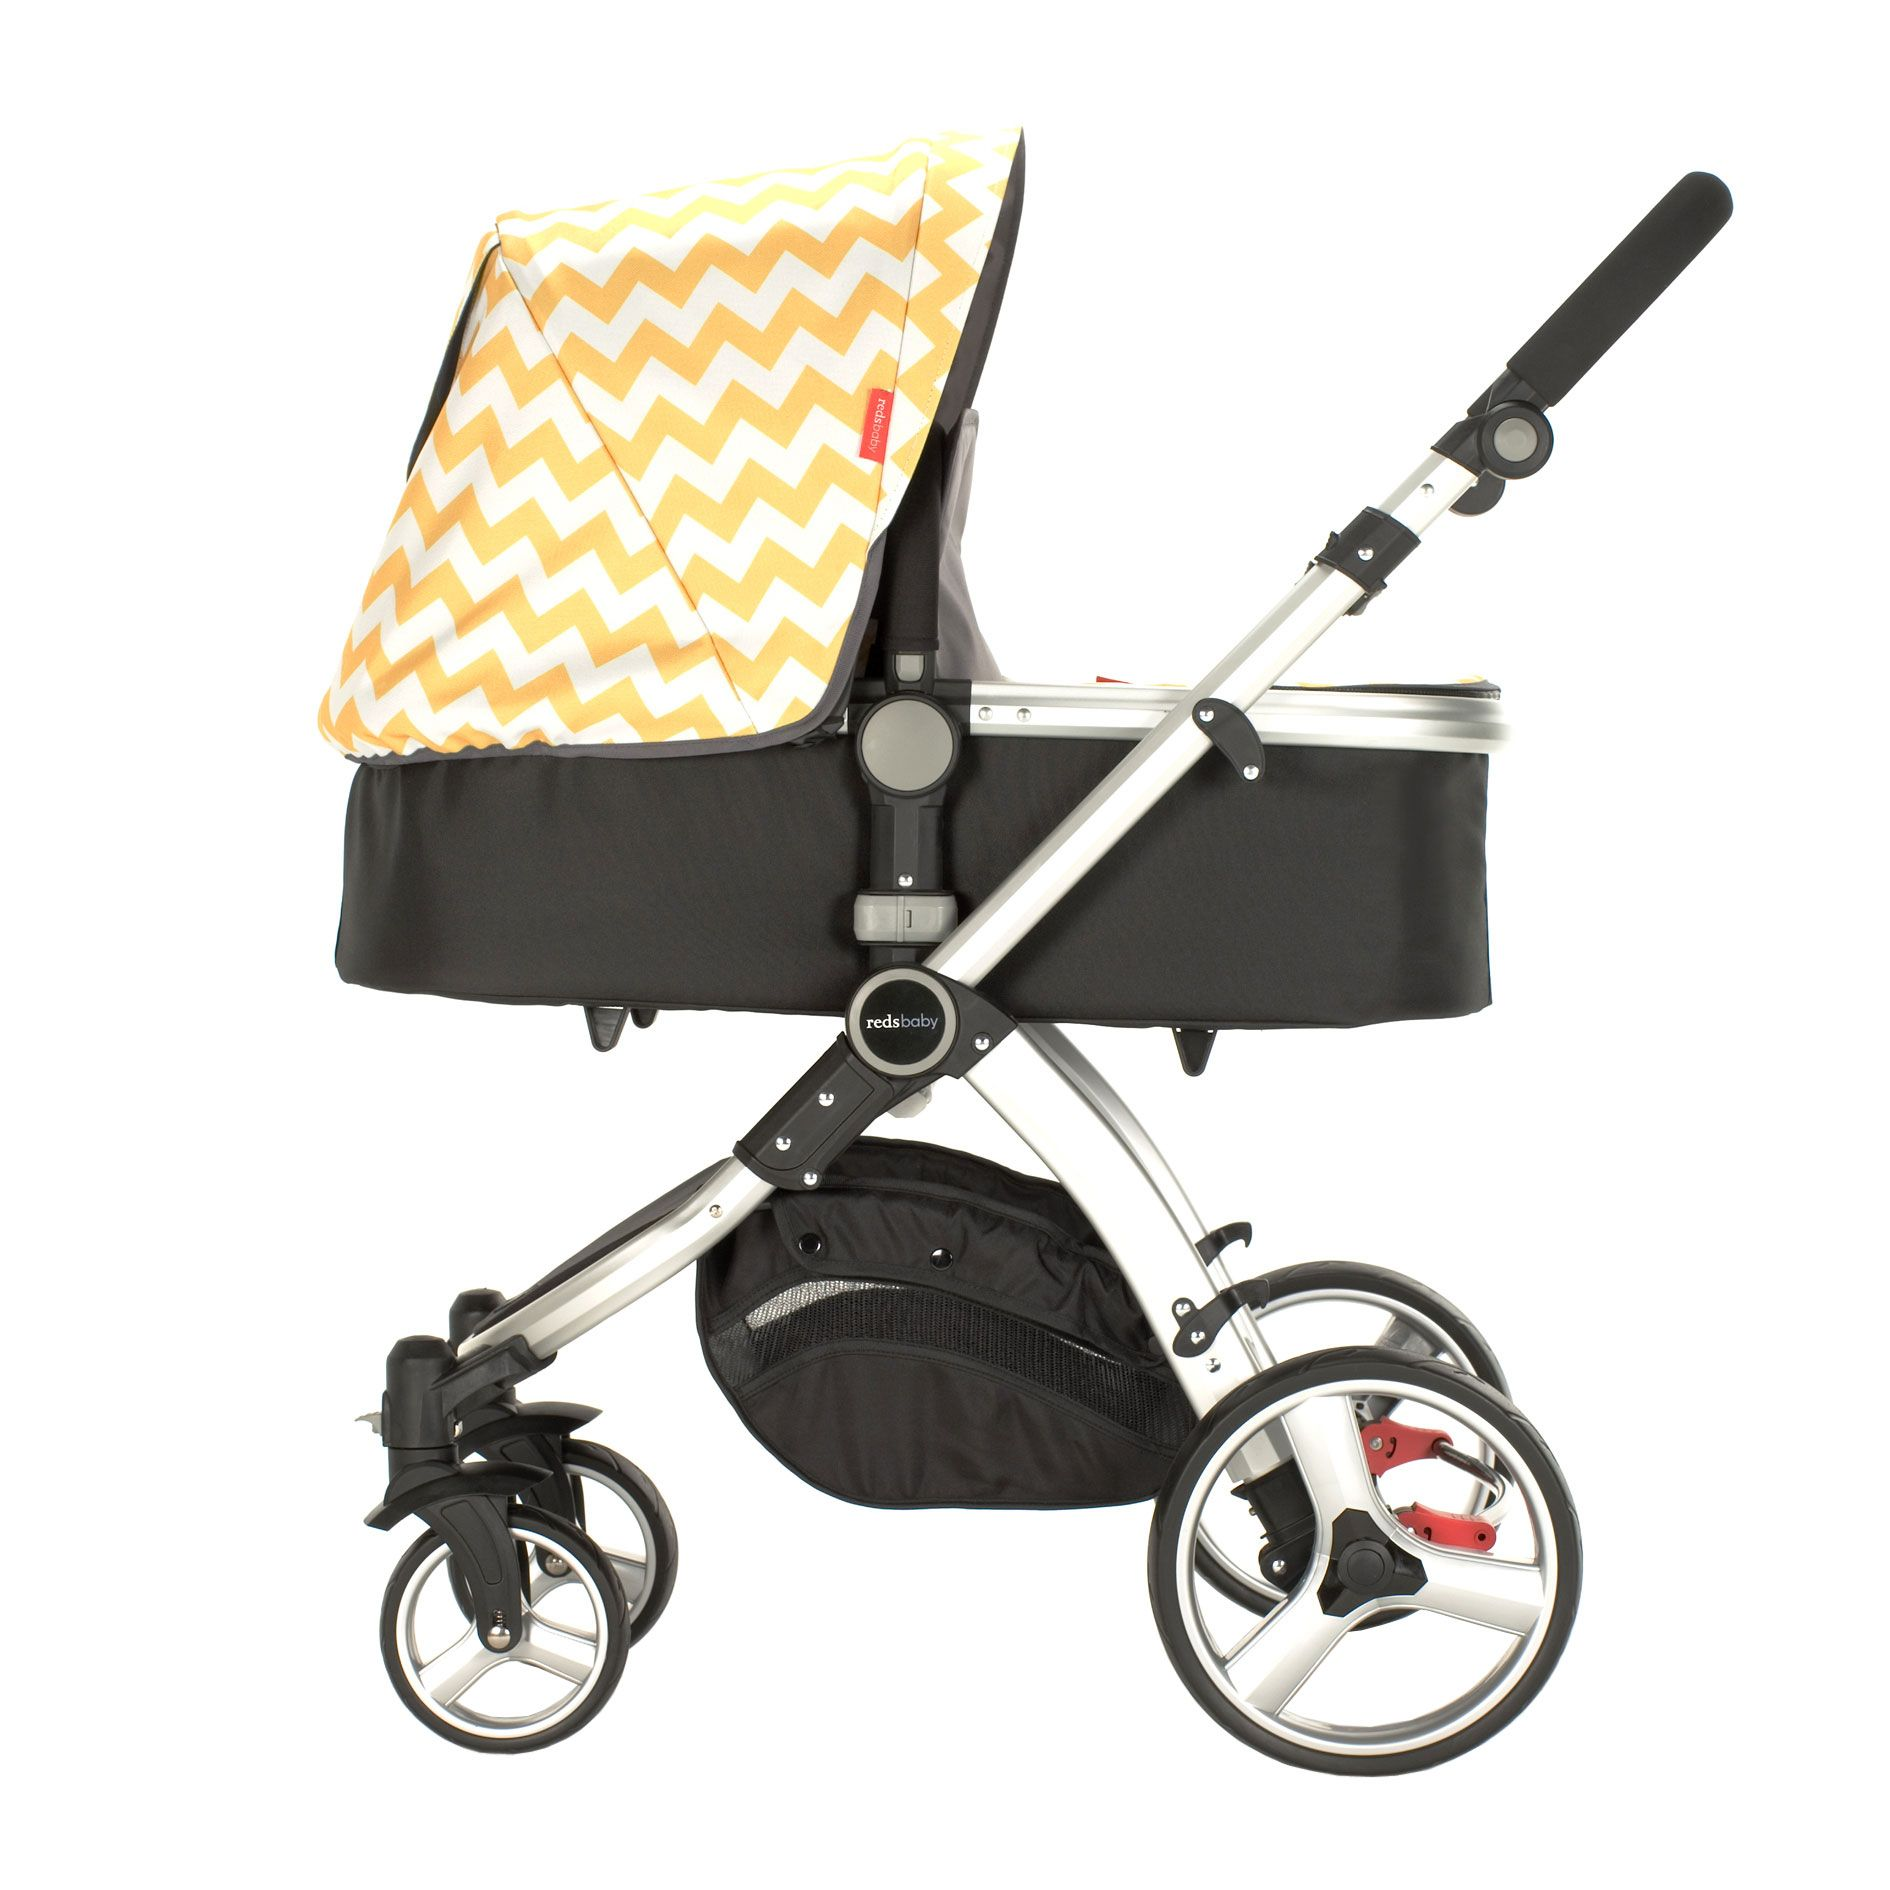 Redsbaby Bounce The Utlimate AllInOne Stroller add a